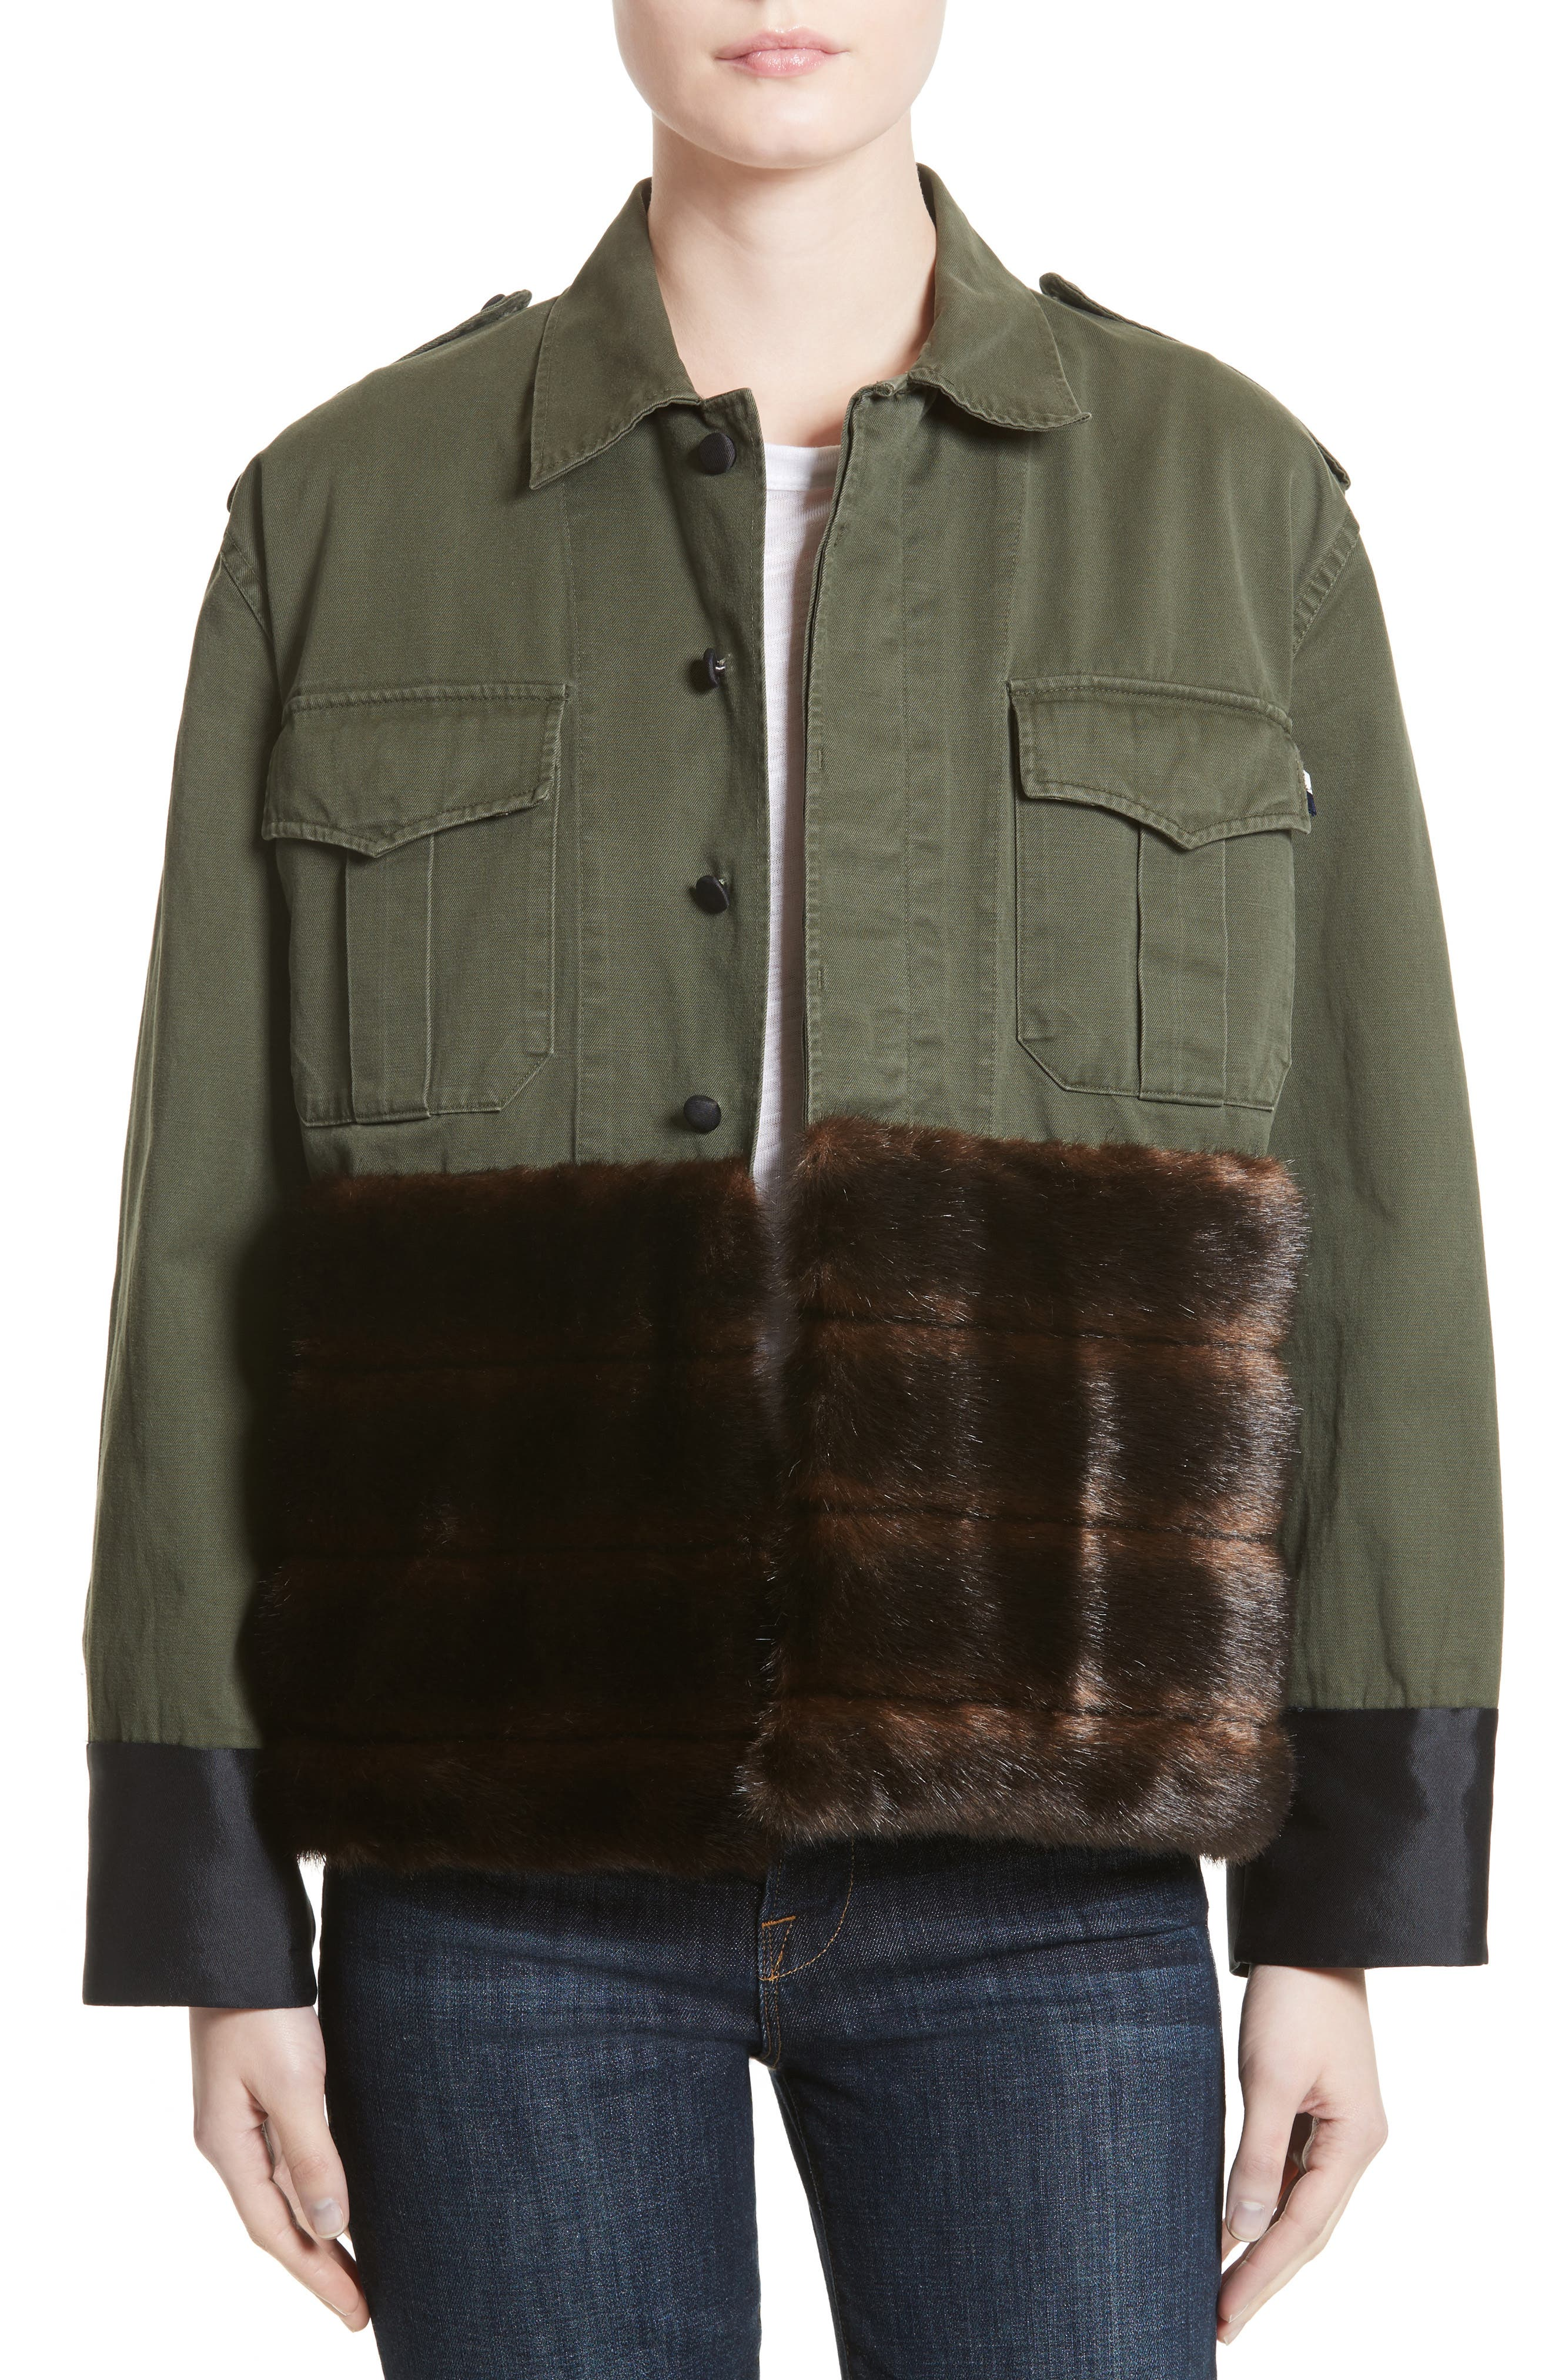 Harvey Faircloth Vintage Army Jacket with Faux Fur Trim